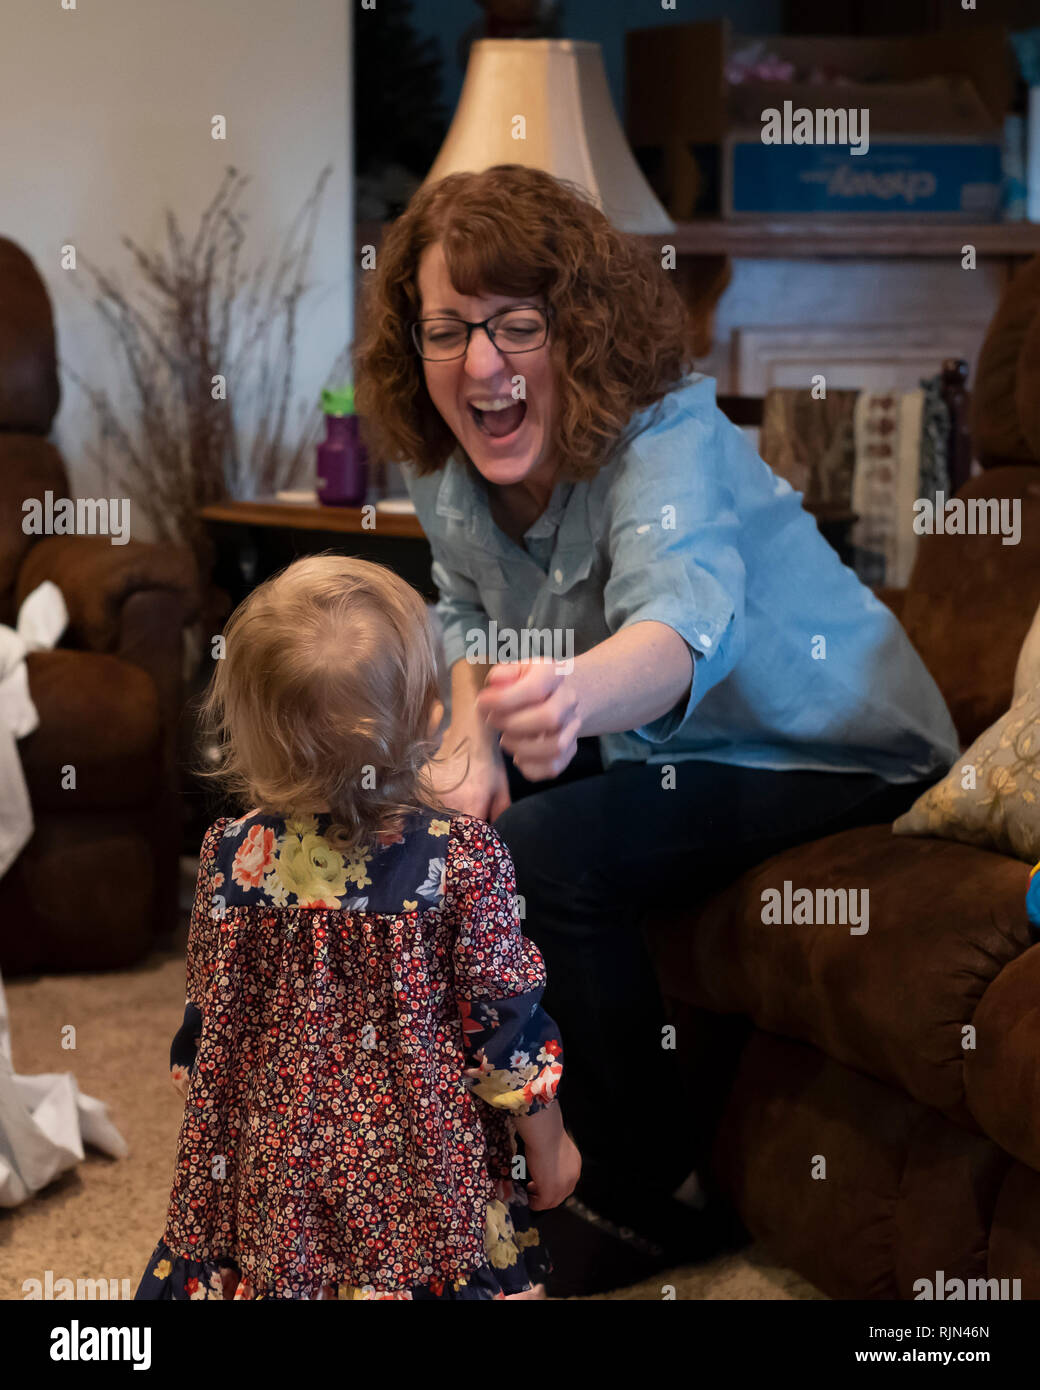 adult-caucasian-woman-laughs-and-reaches